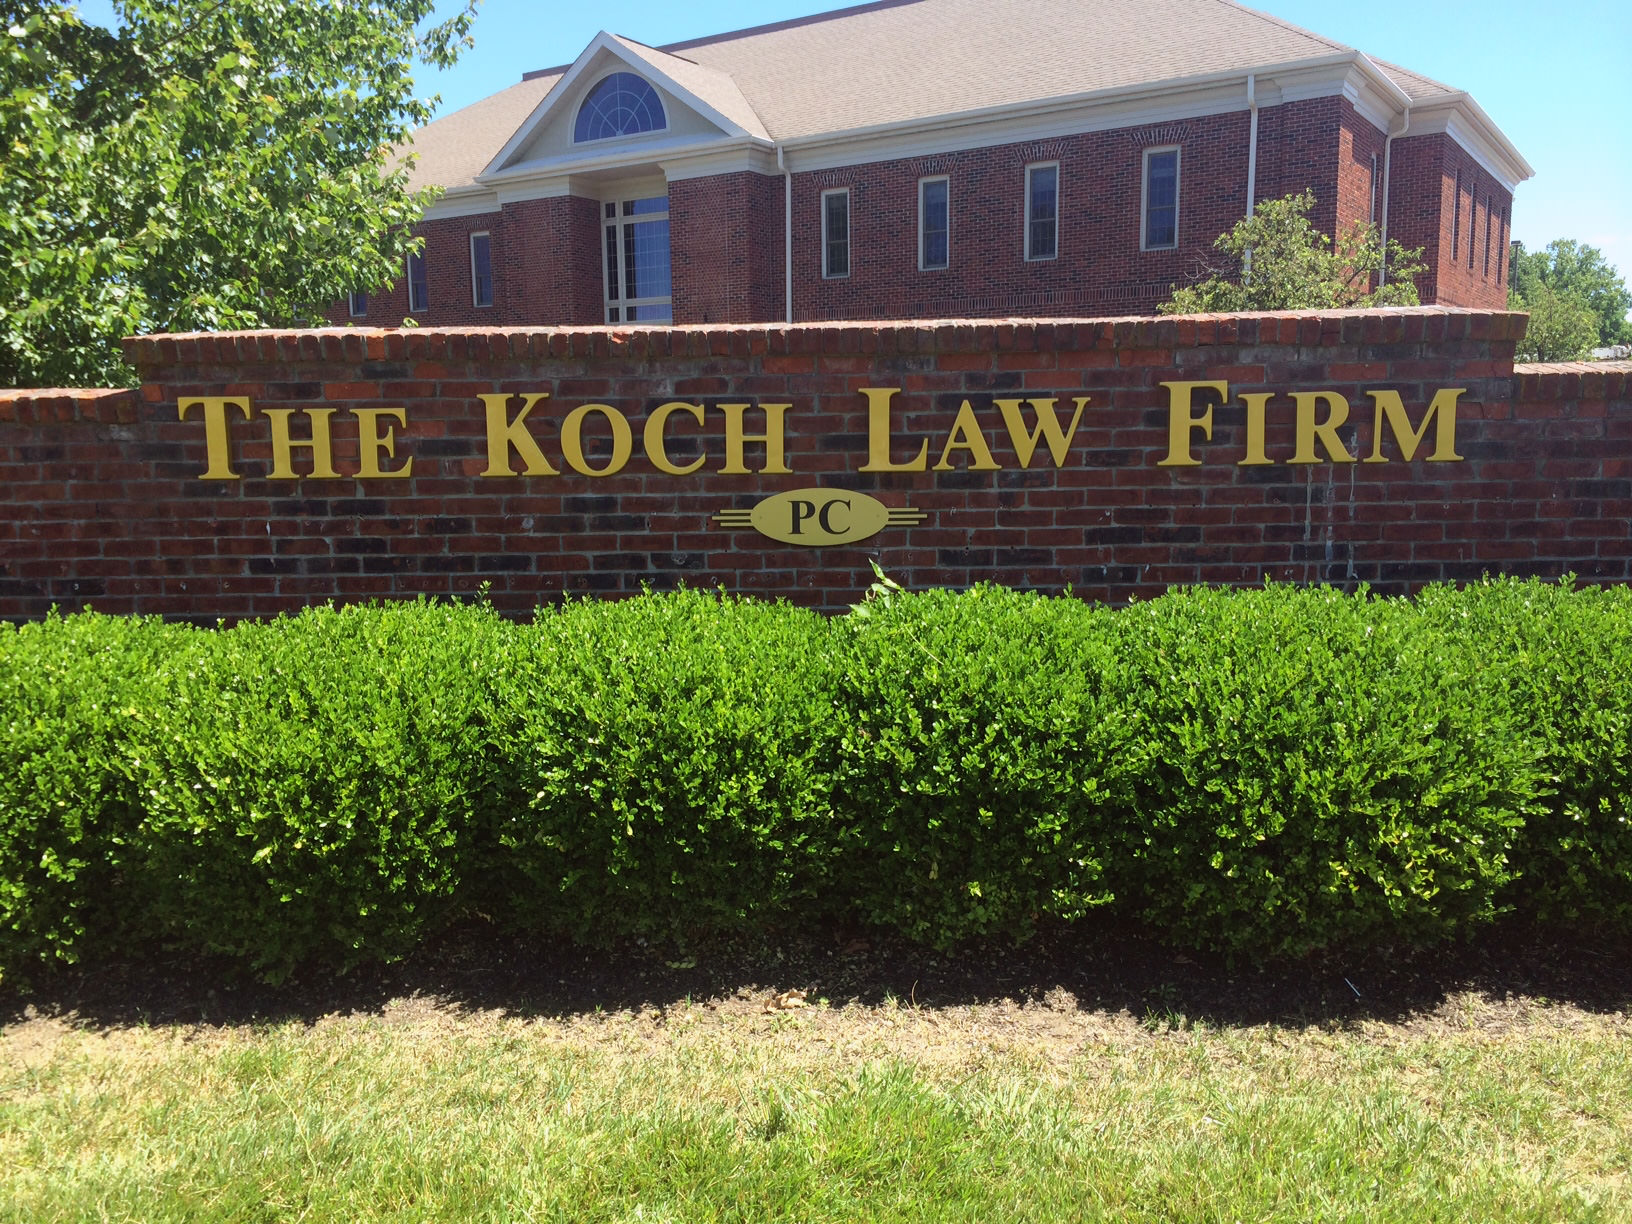 Dimensional Signs - The Koch Law Firm